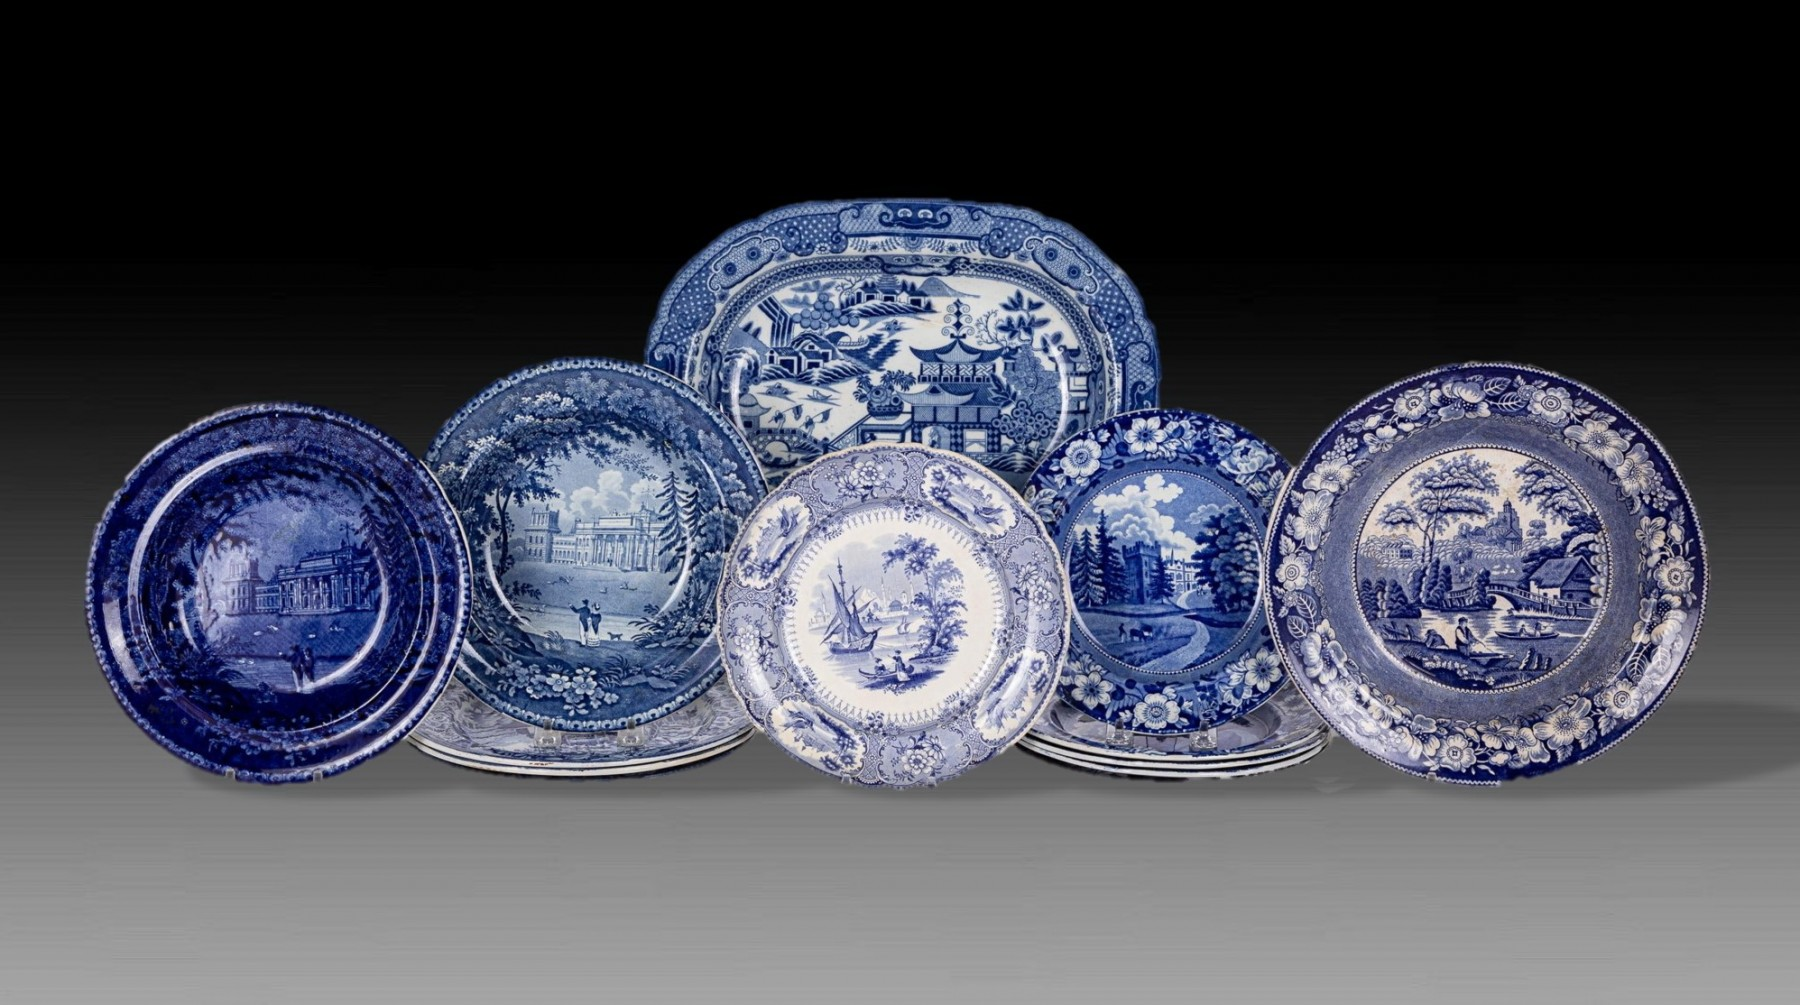 Examples of transfer-printed blue and white ceramics